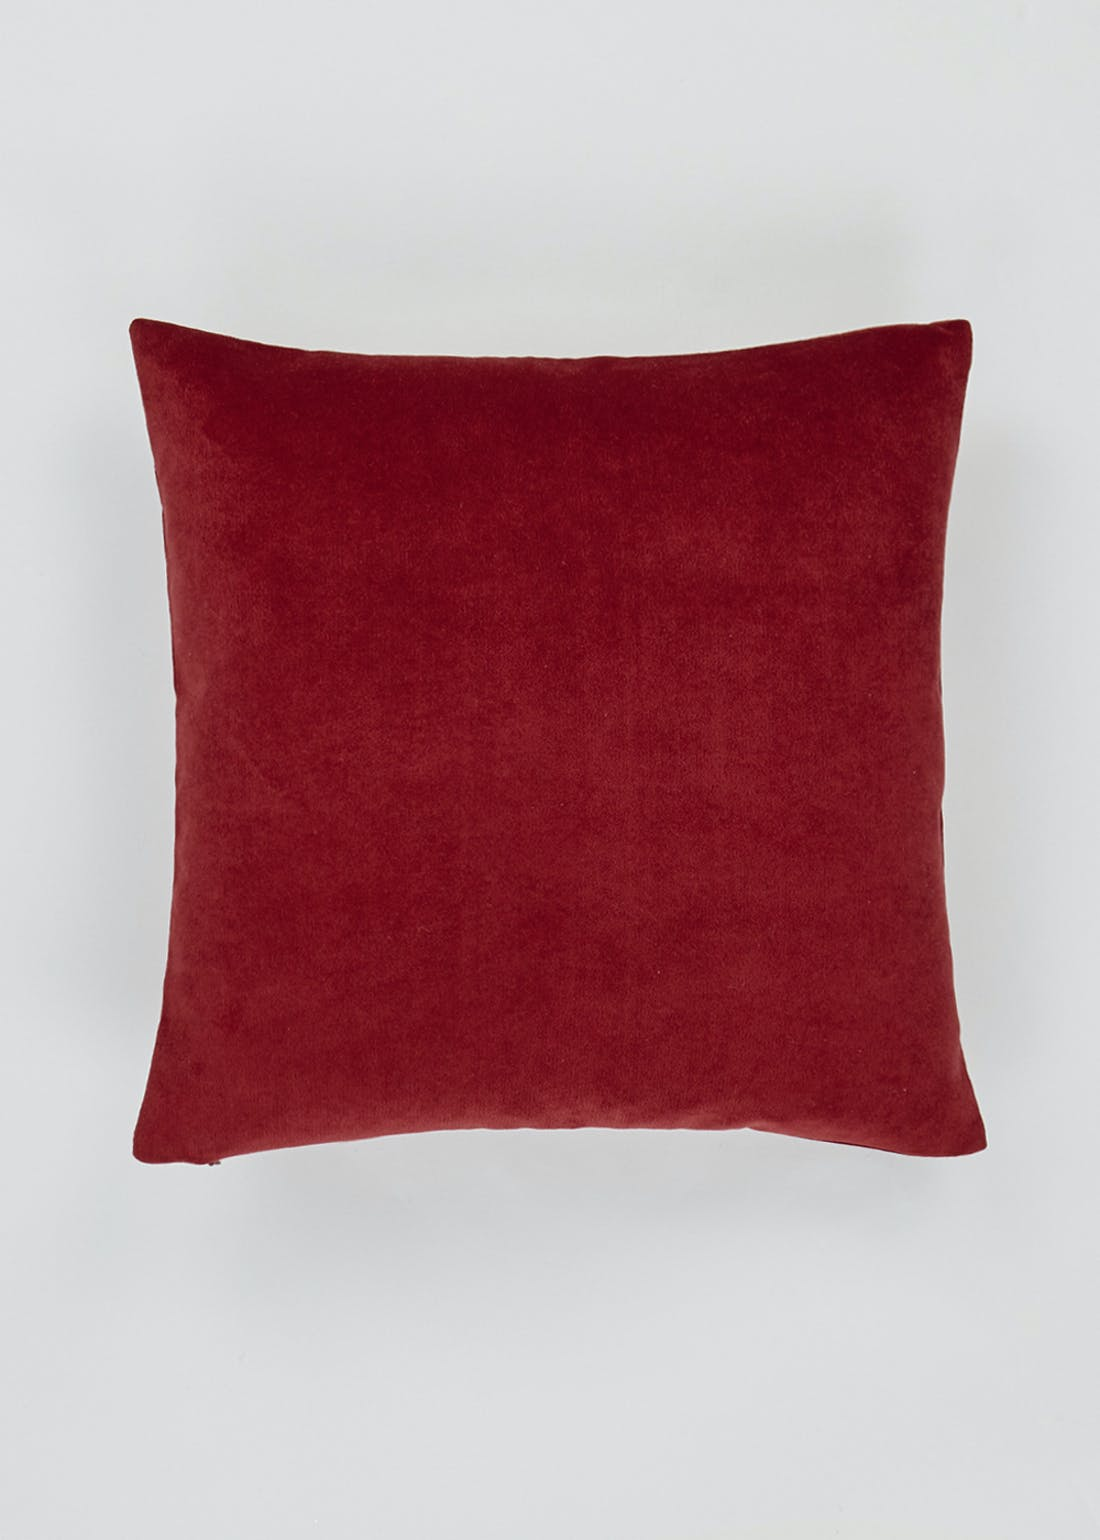 Velour Cushion (45cm x 45cm)